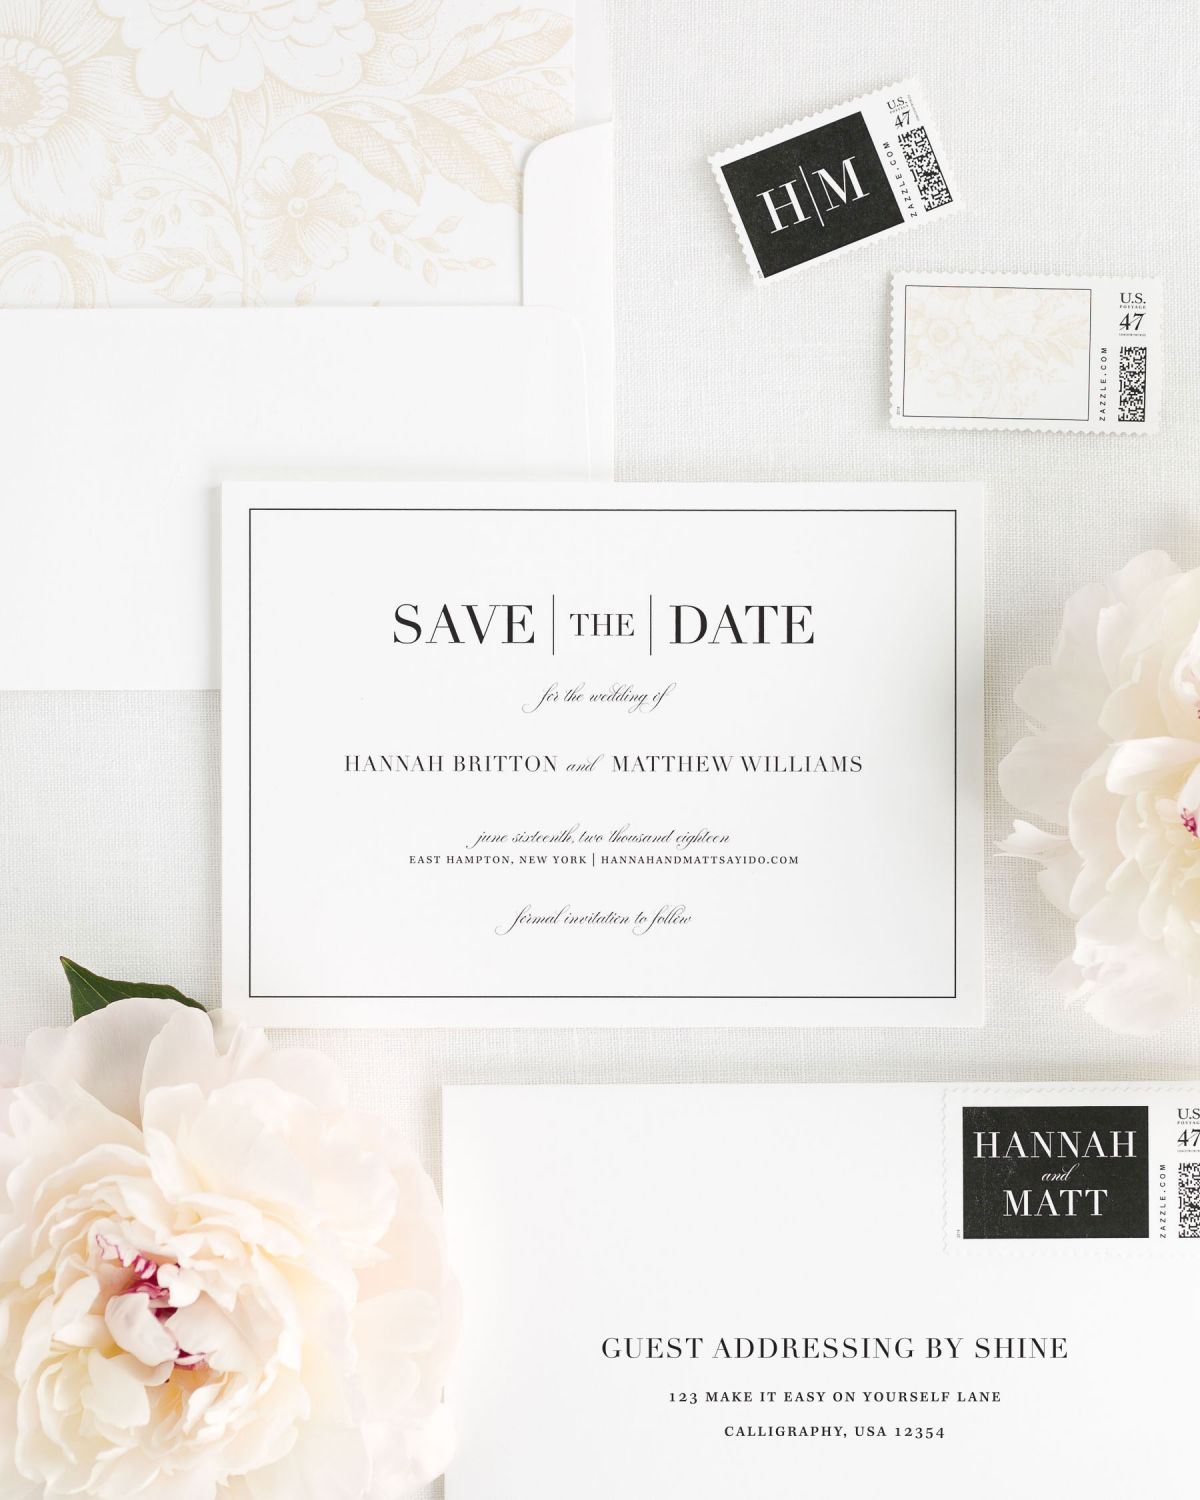 Save the Date with Custom Postage and Floral Envelope Liner